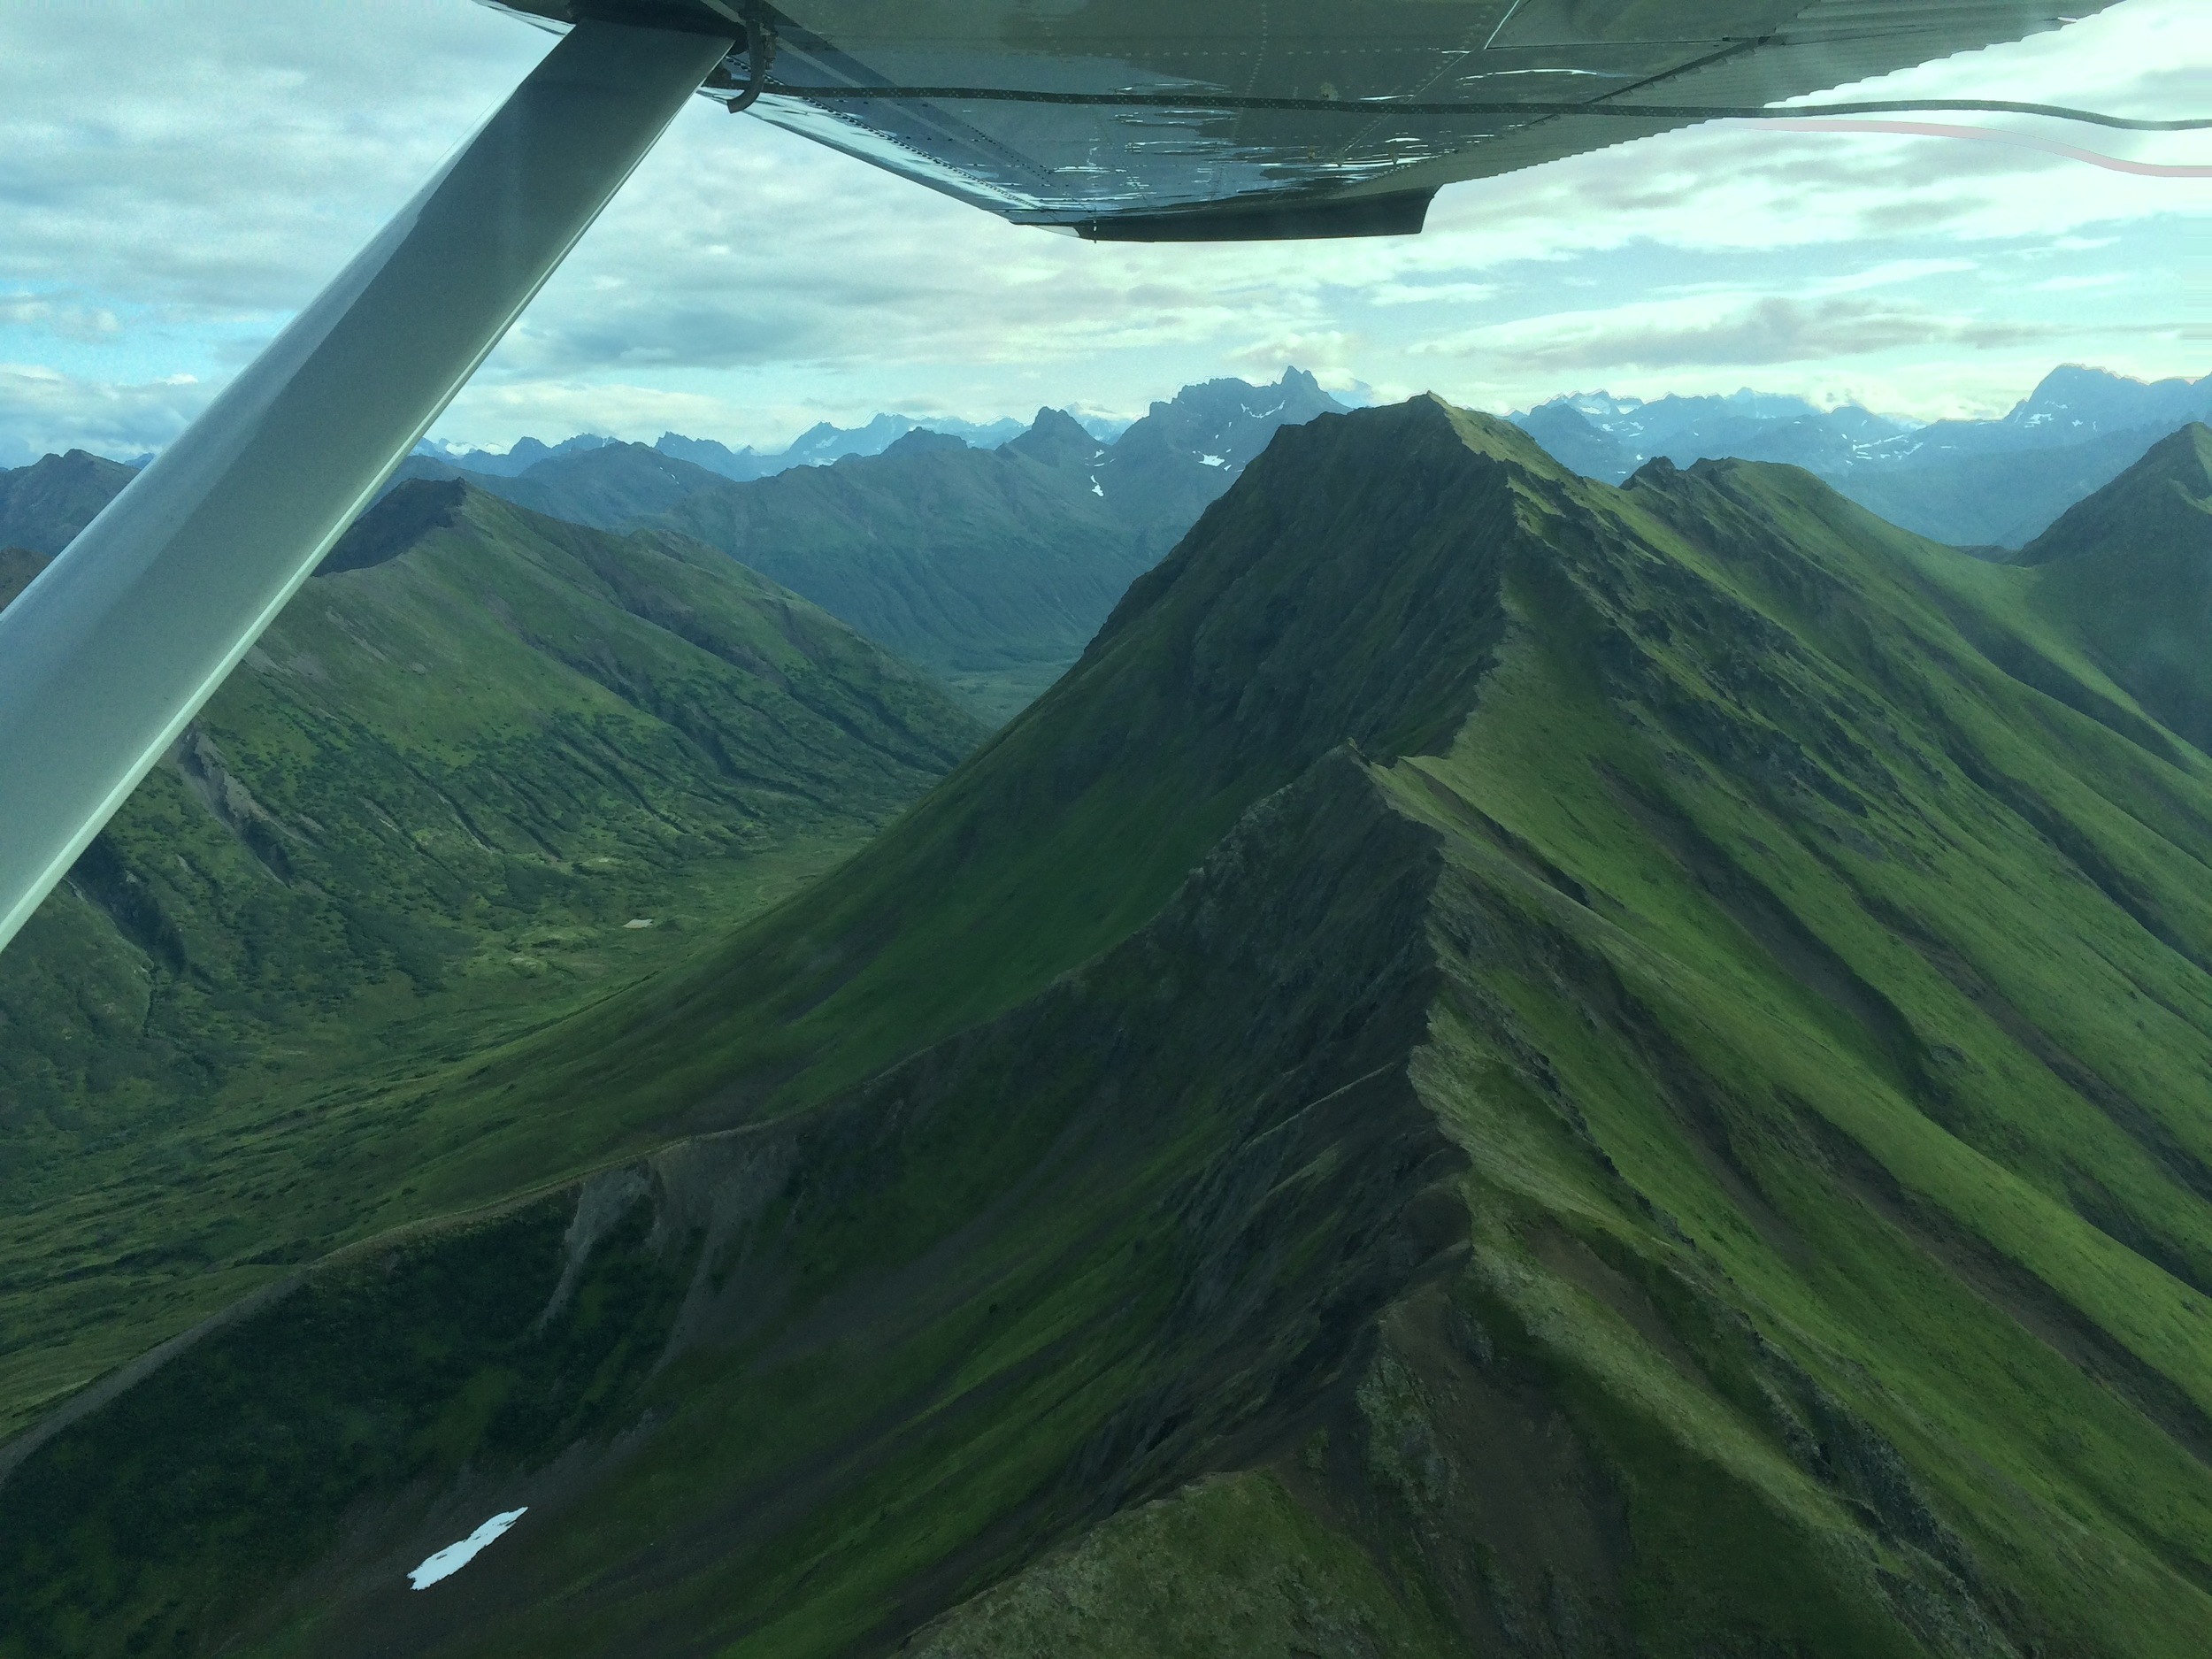 Ridge hopping in the Cessna 185. Welcome to the Jungle.